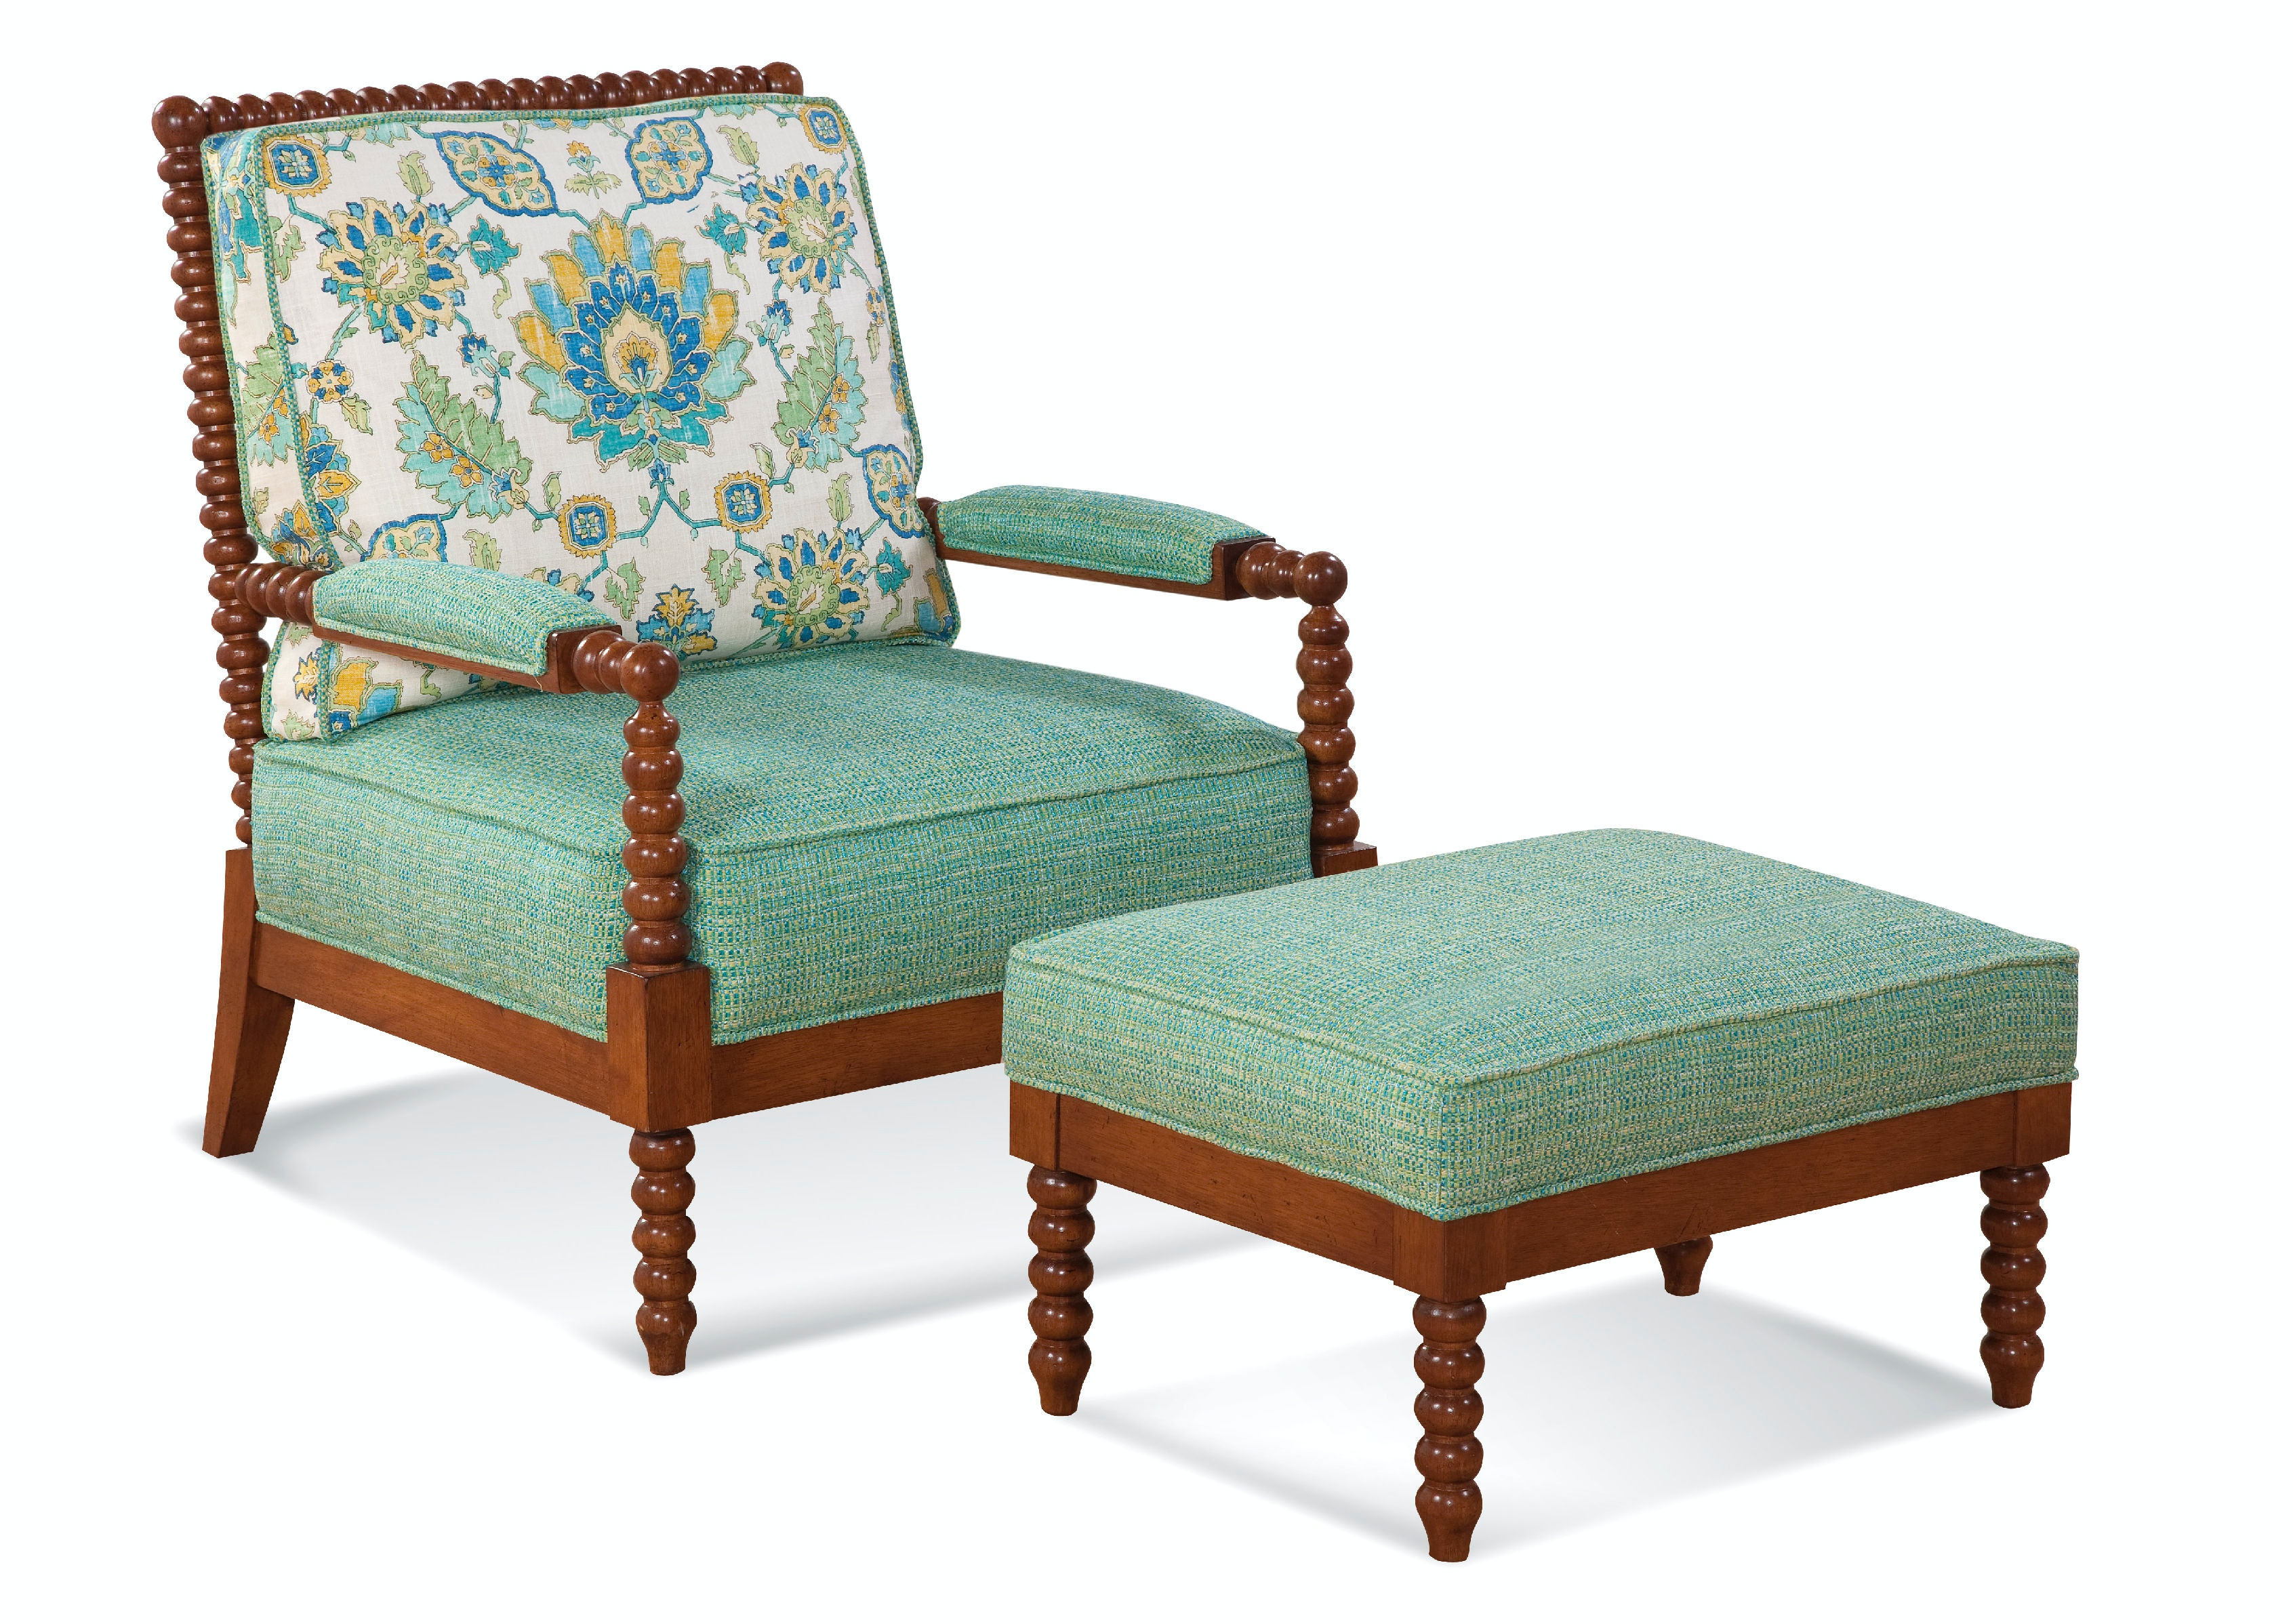 Beau Braxton Culler Lind Island Lounge Chair And Ottoman 1046 CO SET